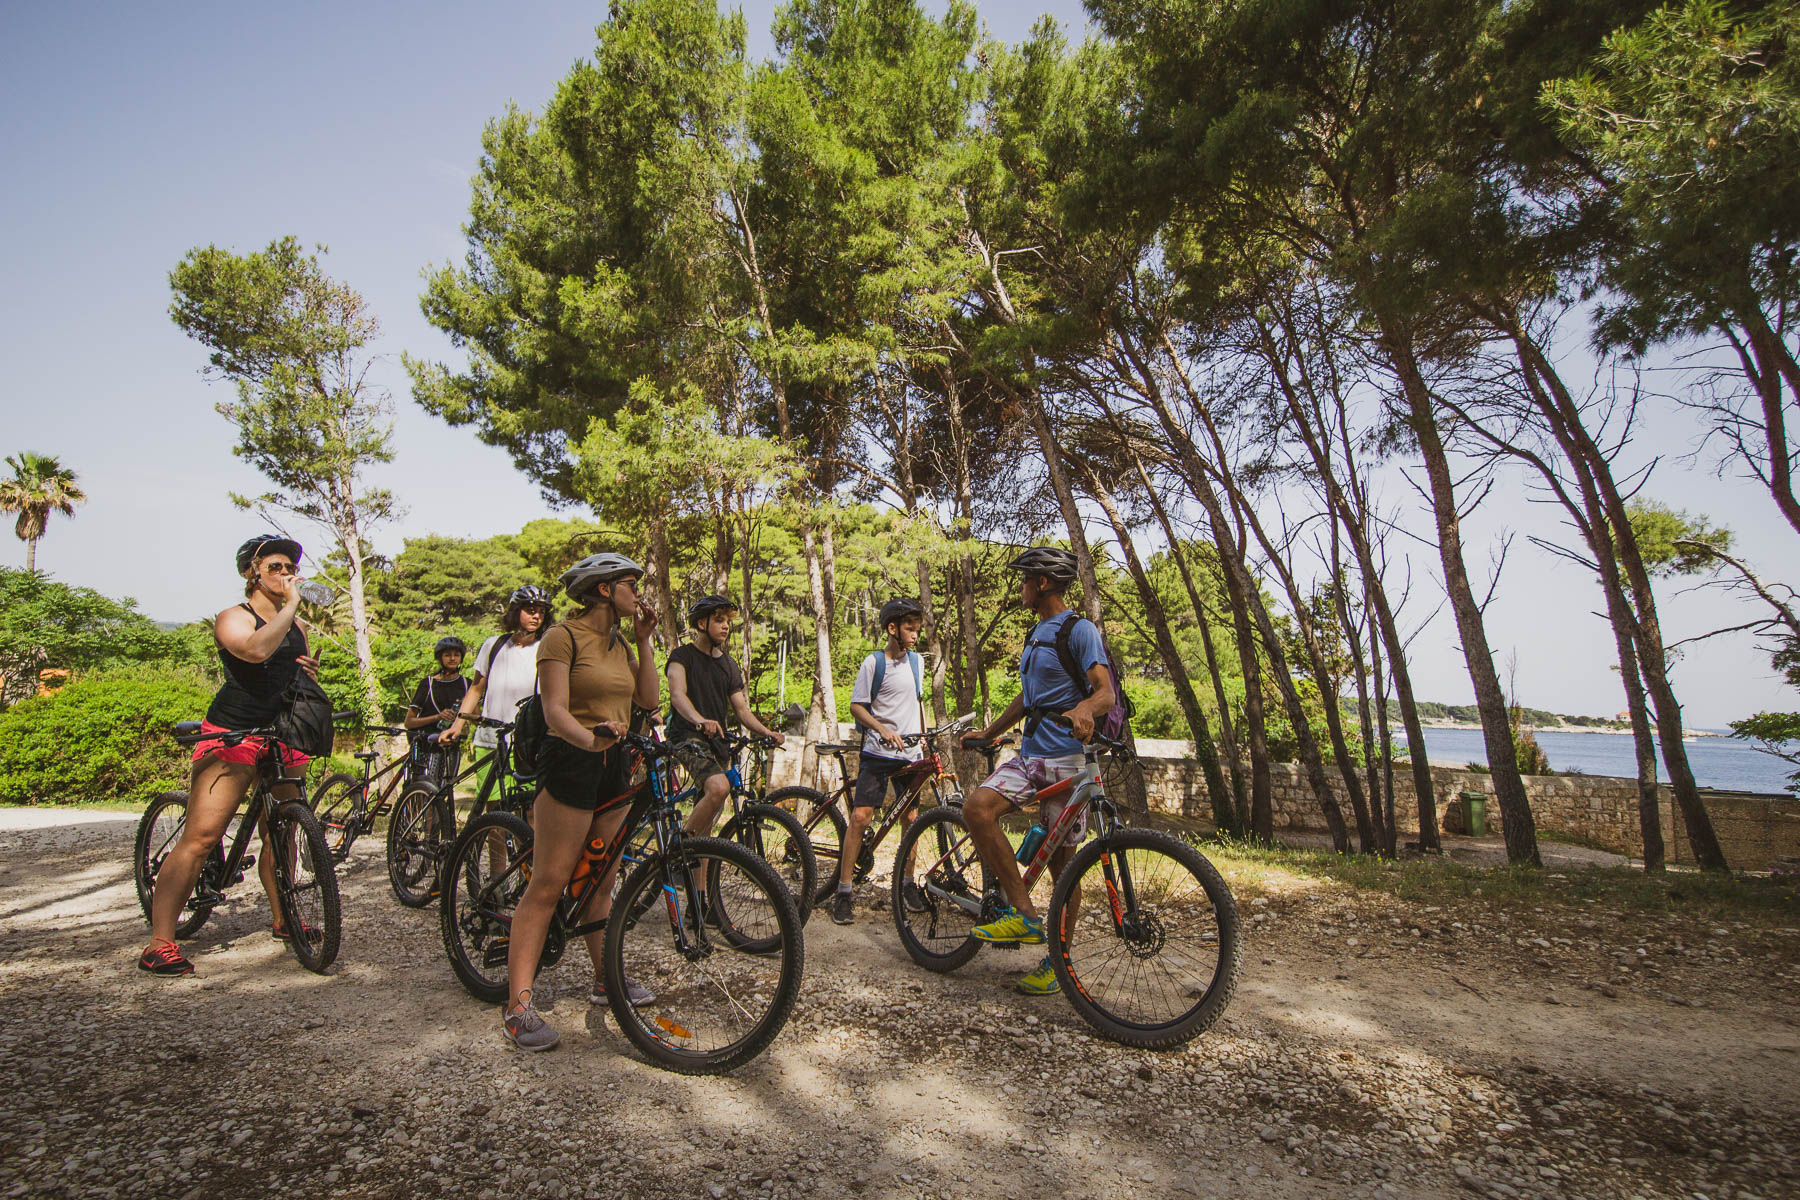 Cycling school trip on Vis island